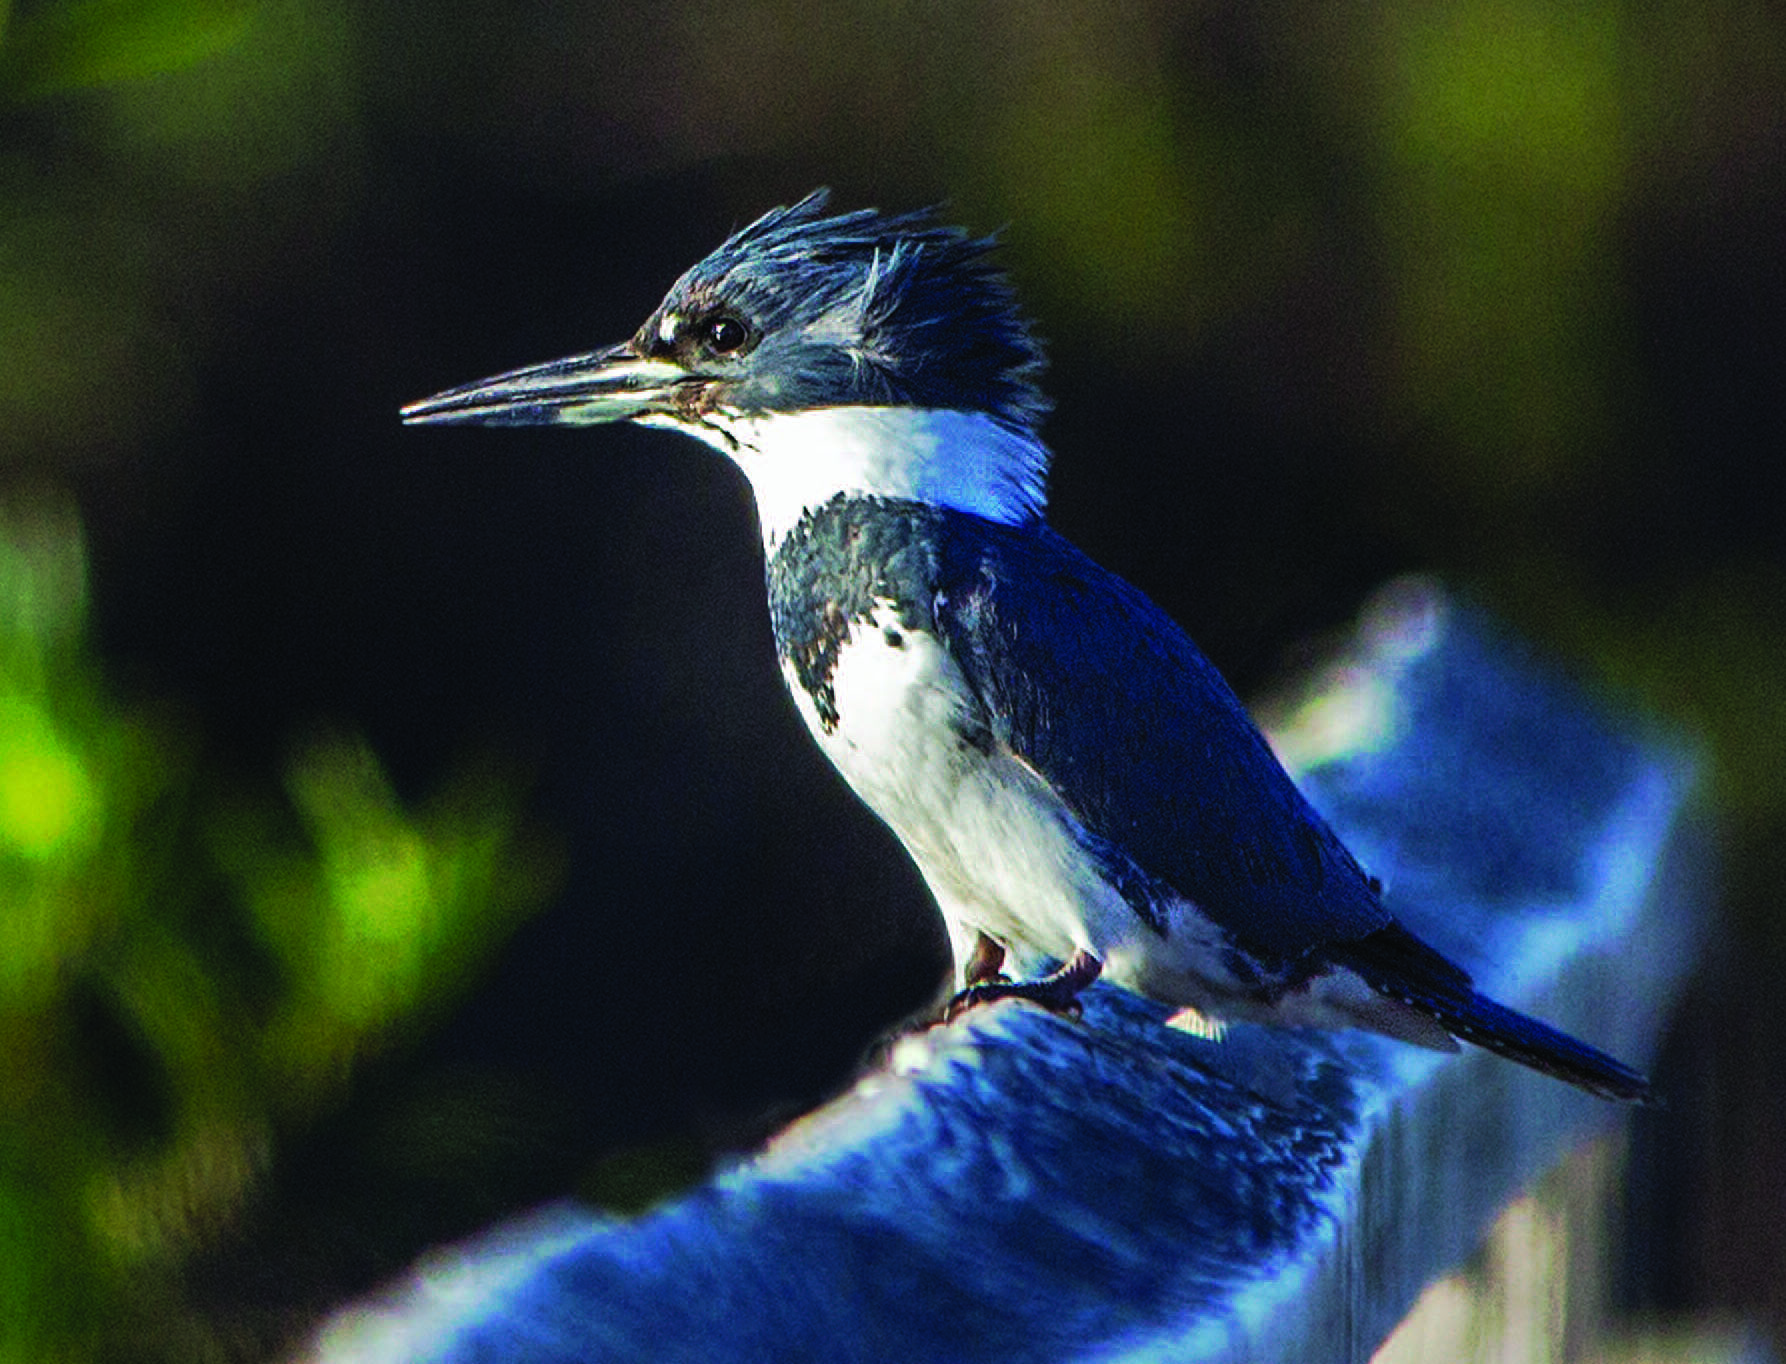 Bird Of The Month August Is The Belted Kingfisher Bolsa Chica Land Trust